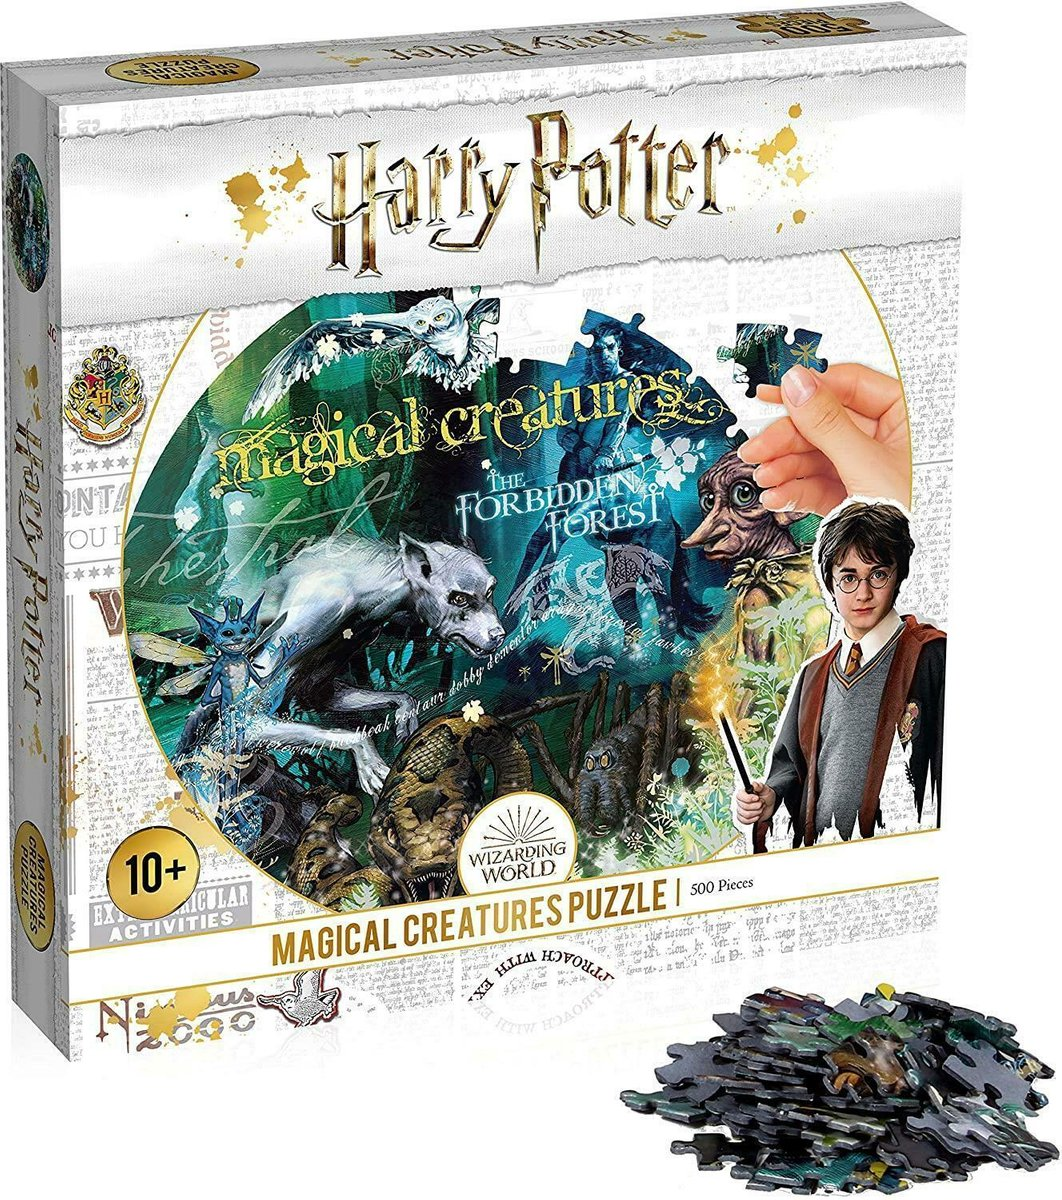 Harry Potter Magical Creatures 500 Pc